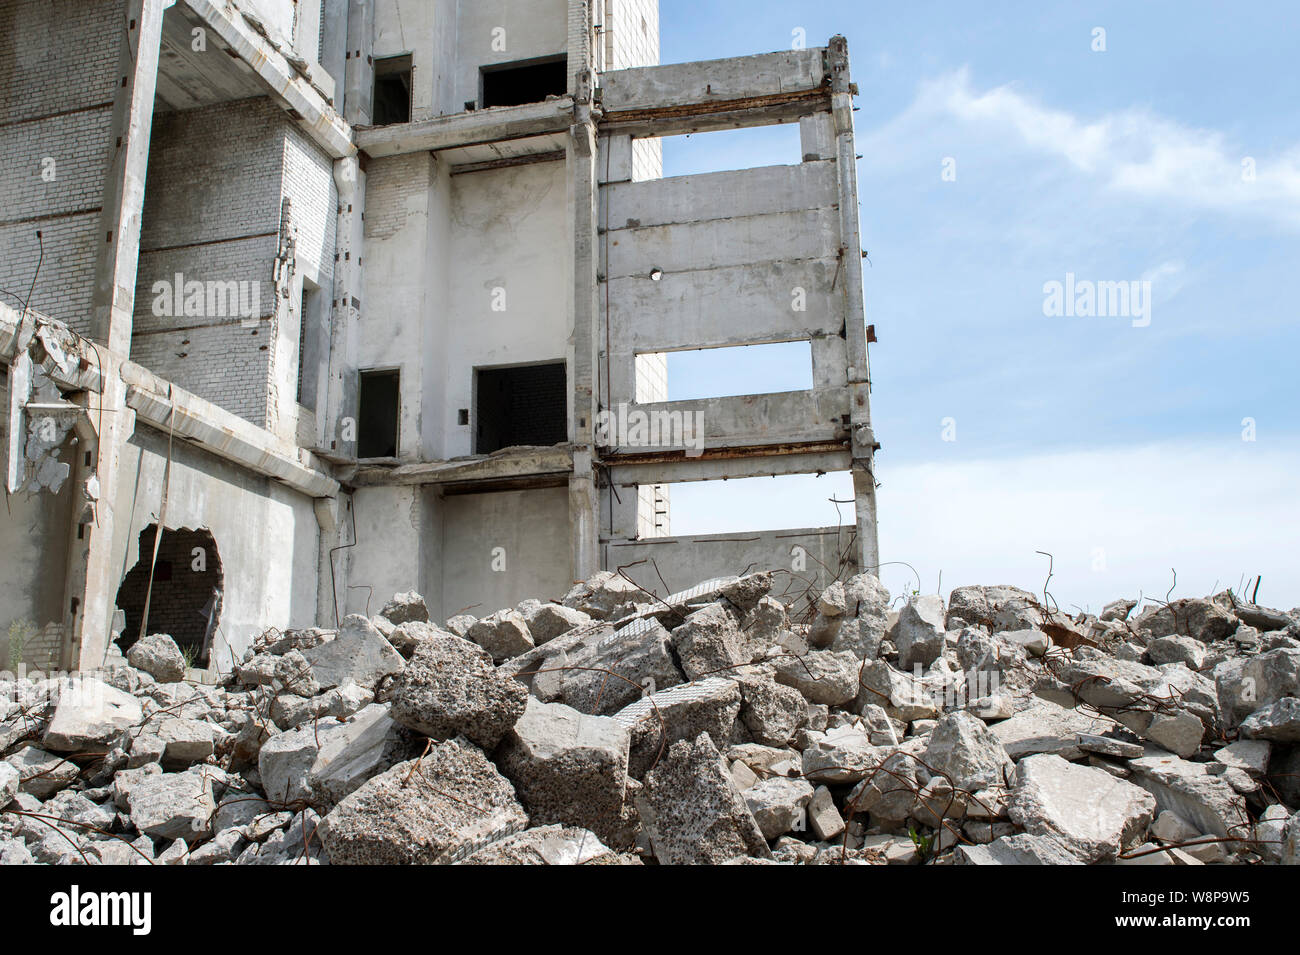 Concrete gray debris close-up on the background of the remains of the destroyed building against the sky. Background Stock Photo